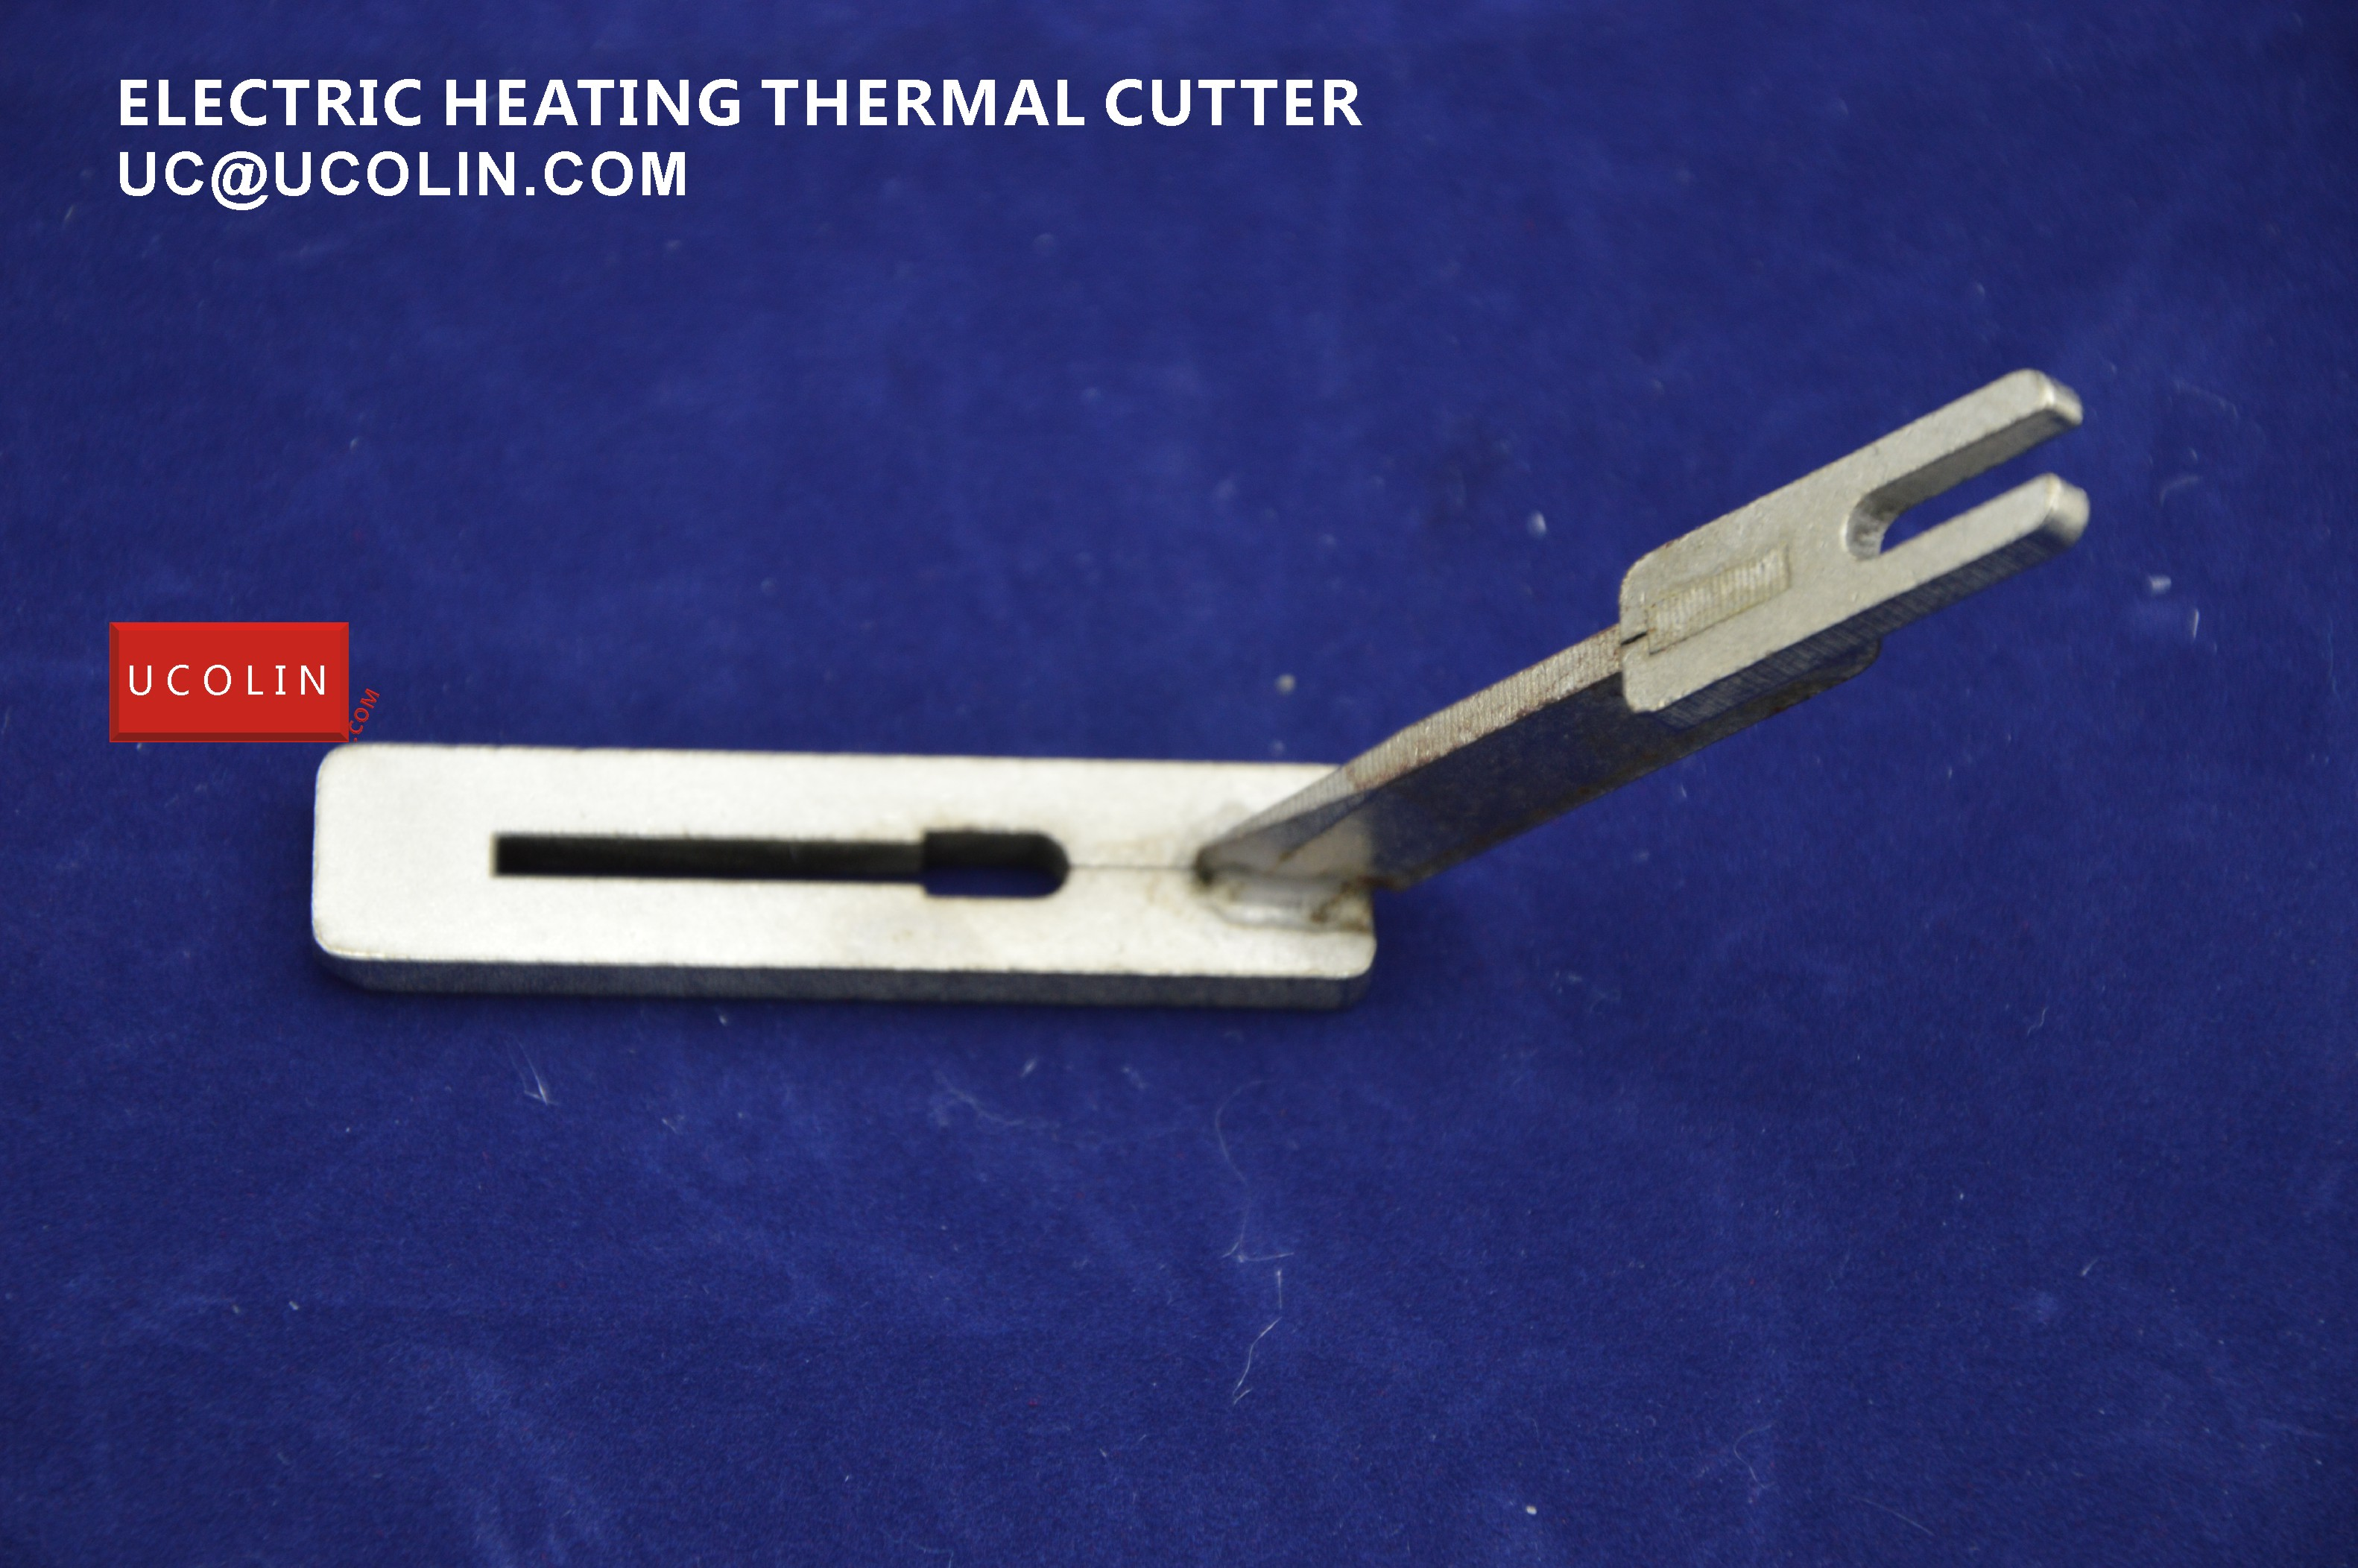 003 ELECTRIC HEATING CUTTER FOR SATINE RIBBON